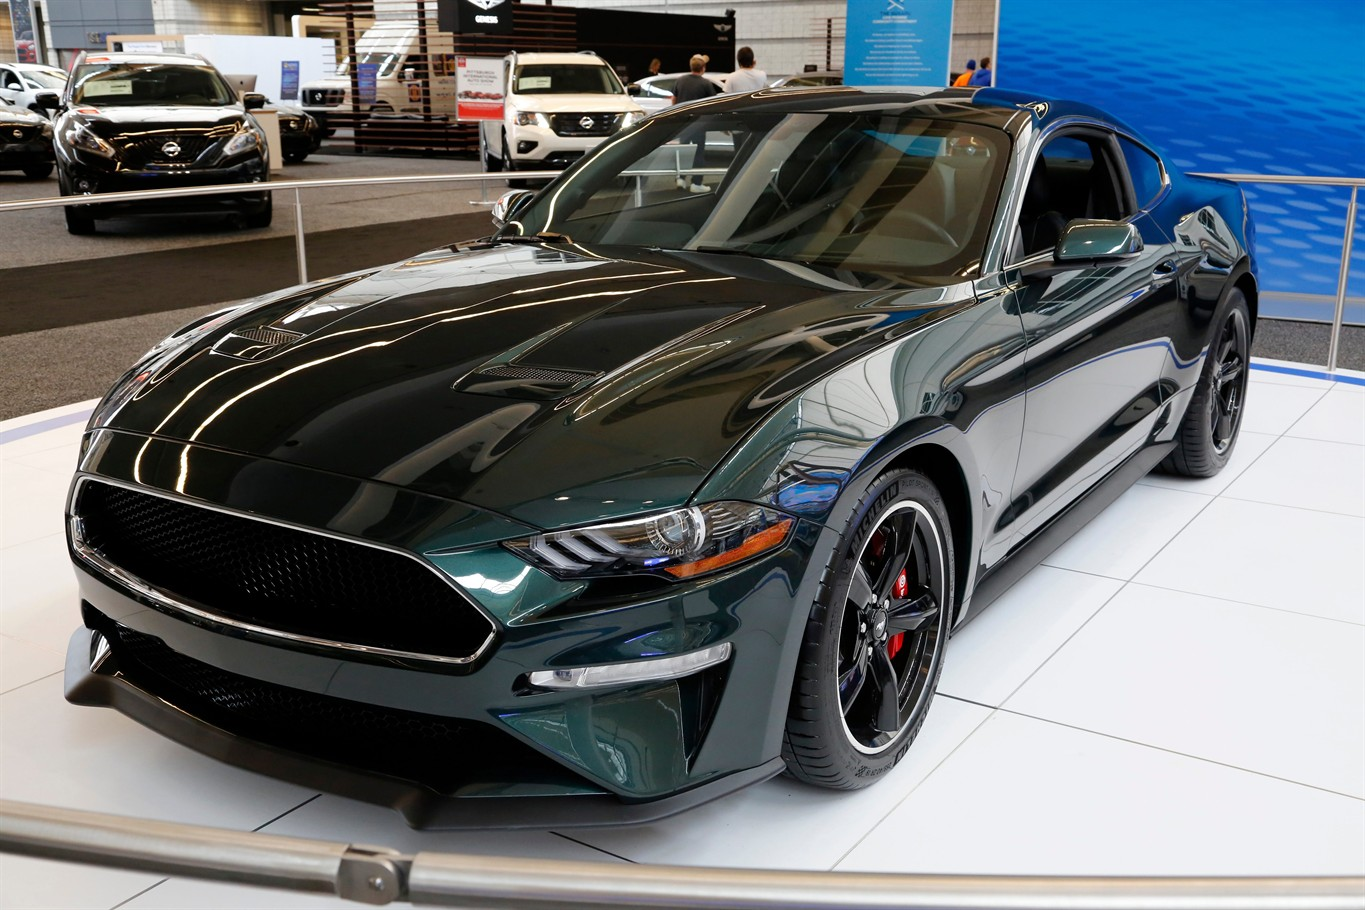 15 2018 File Photos Shows A 2019 Ford Mustang Bullitt On Display At The Pittsburgh Auto Show For Will Debut Latest Version Of